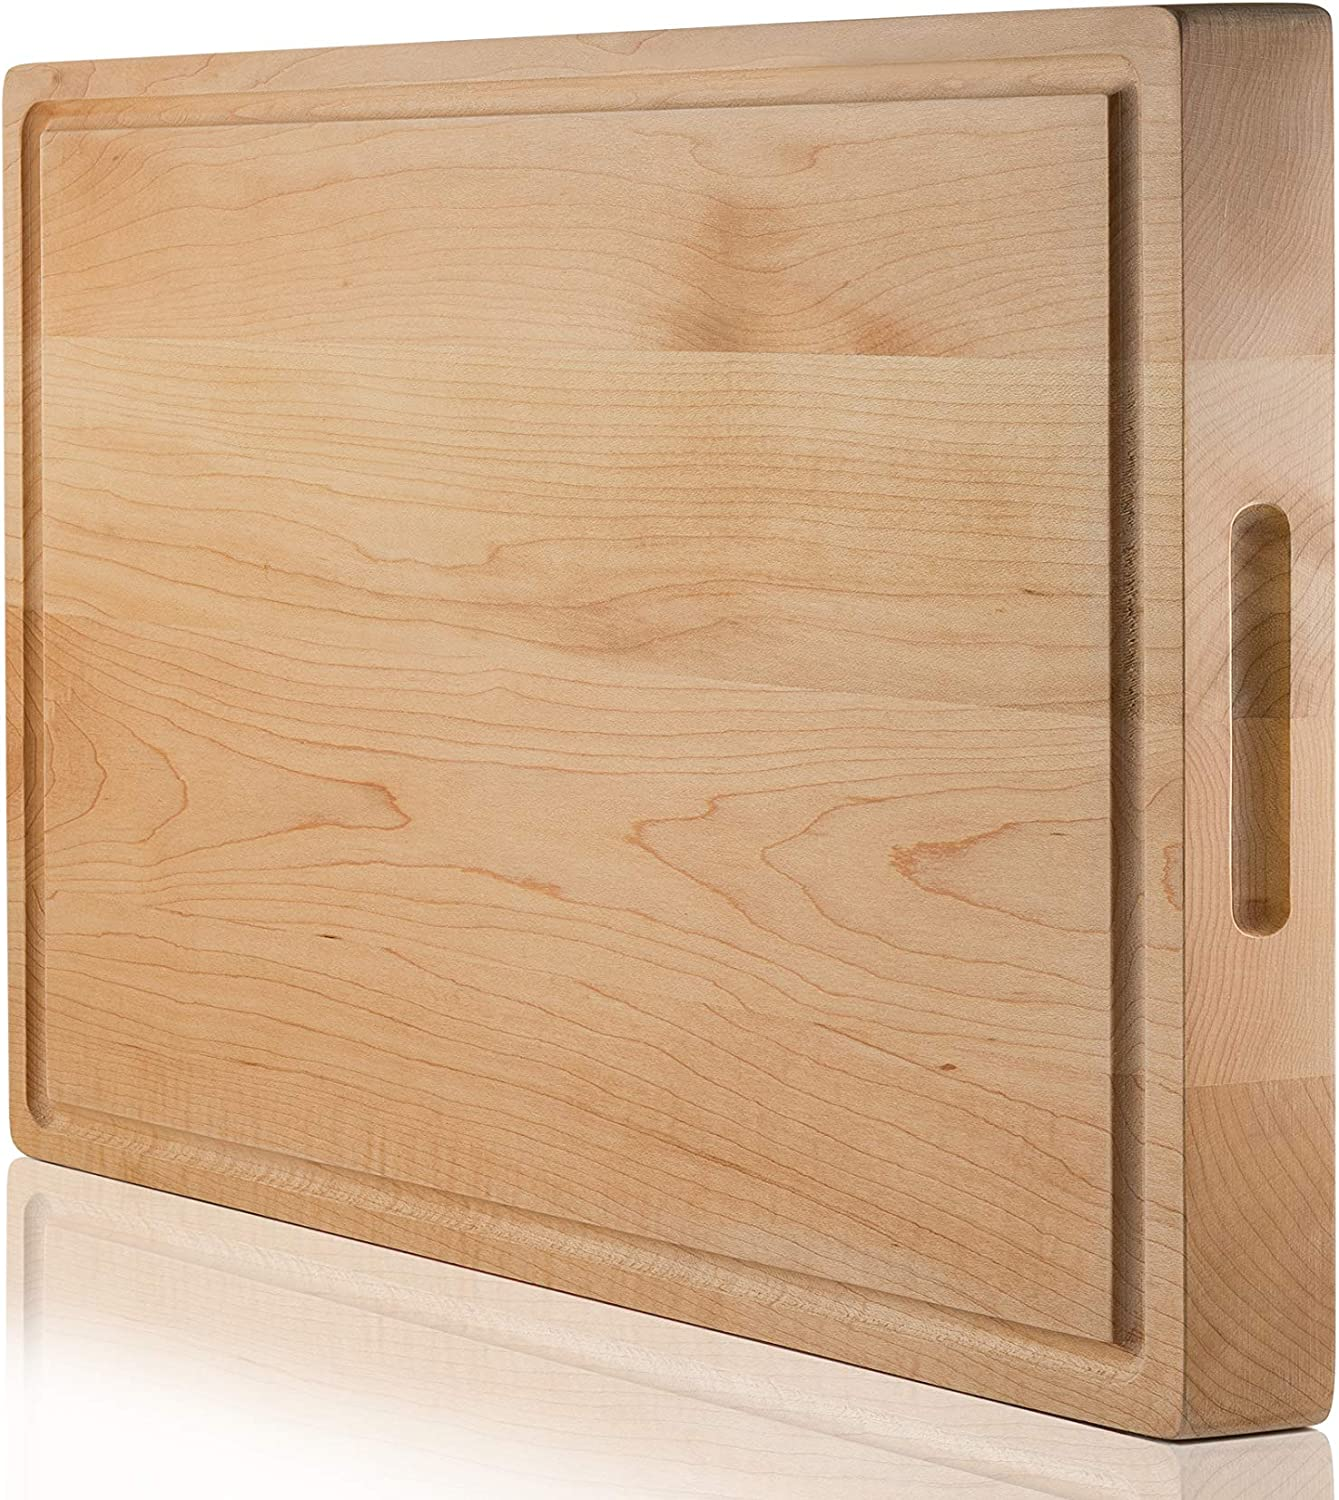 SoulFino EXTRA Year-end gift LARGE Cutting Board Butcher w Groov Juice Dallas Mall Block